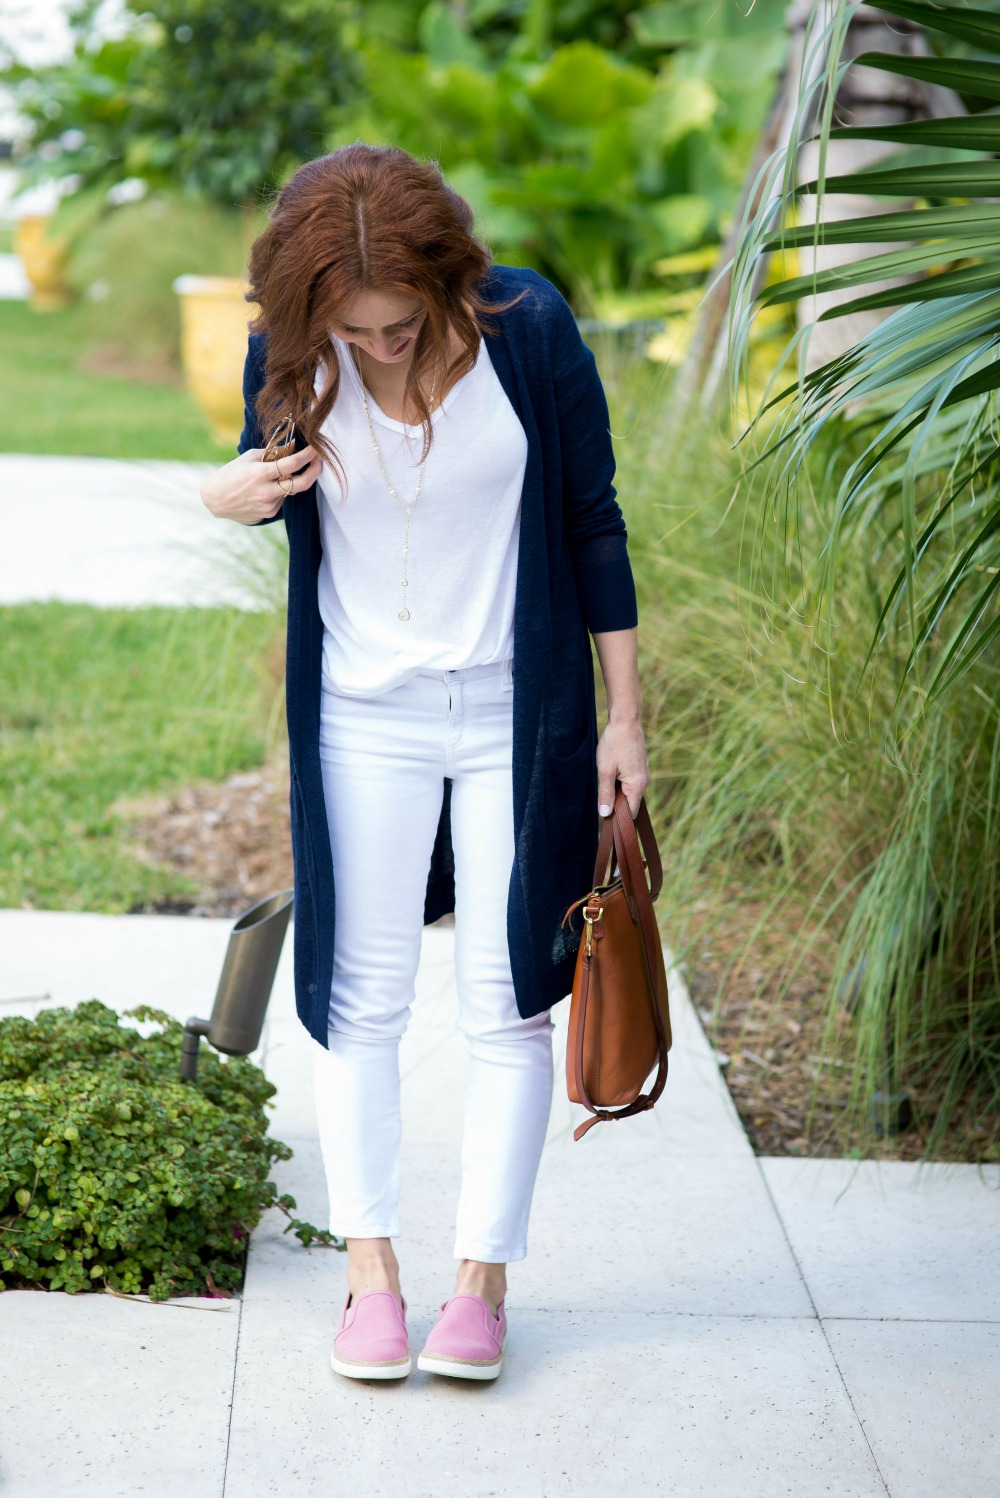 White tee & jeans - White Tee and Jeans outfit by popular Florida style blogger The Modern Savvy